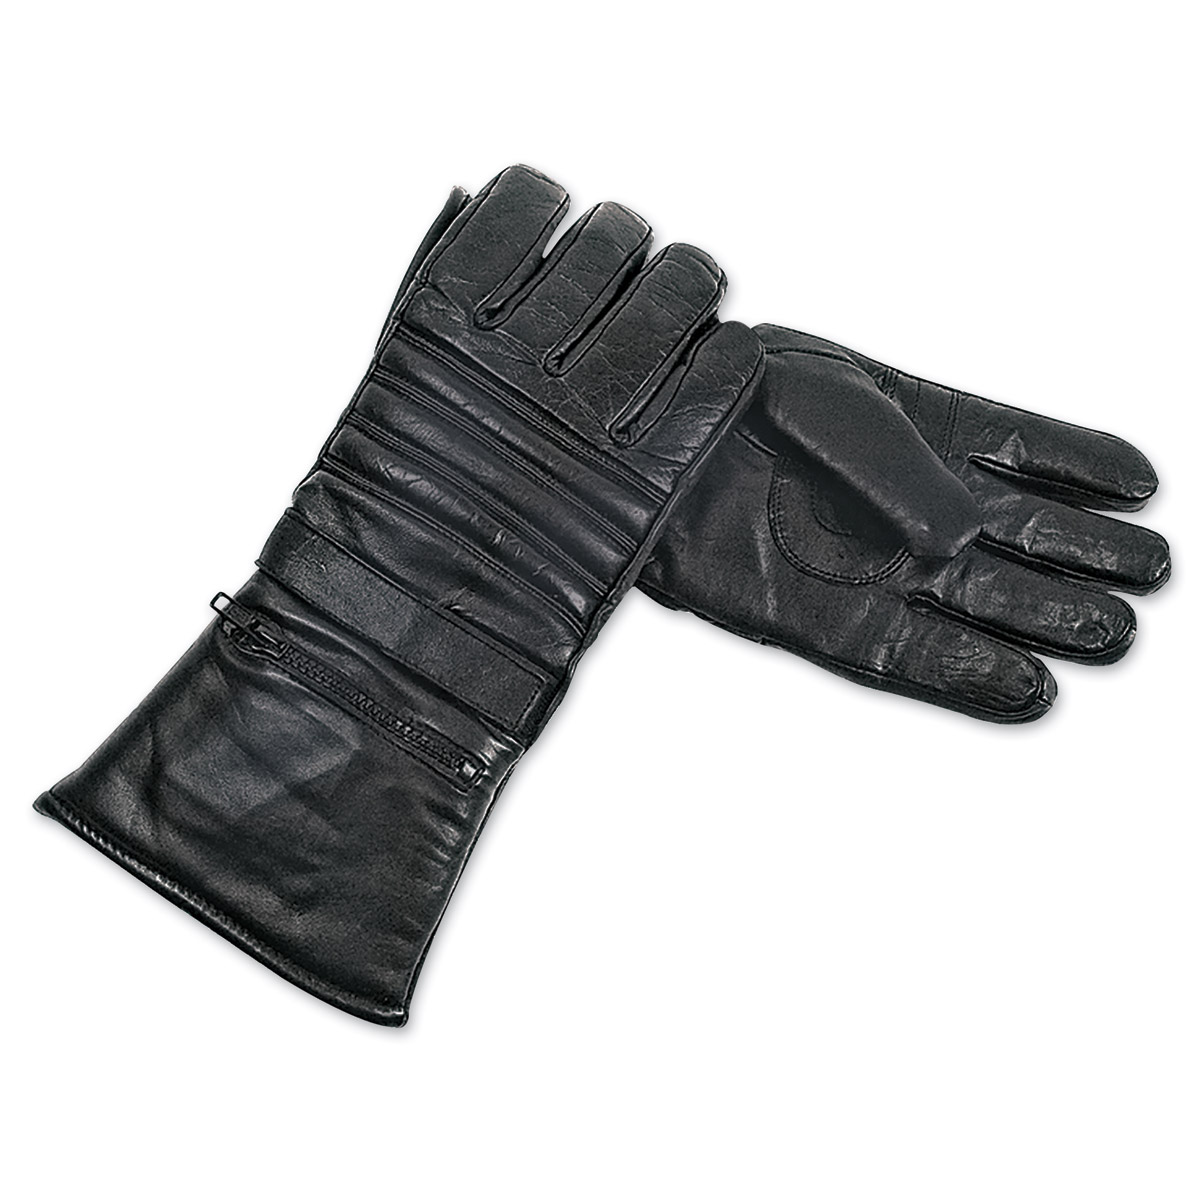 Interstate Leather Men's Padded Riding Black Leather Gloves